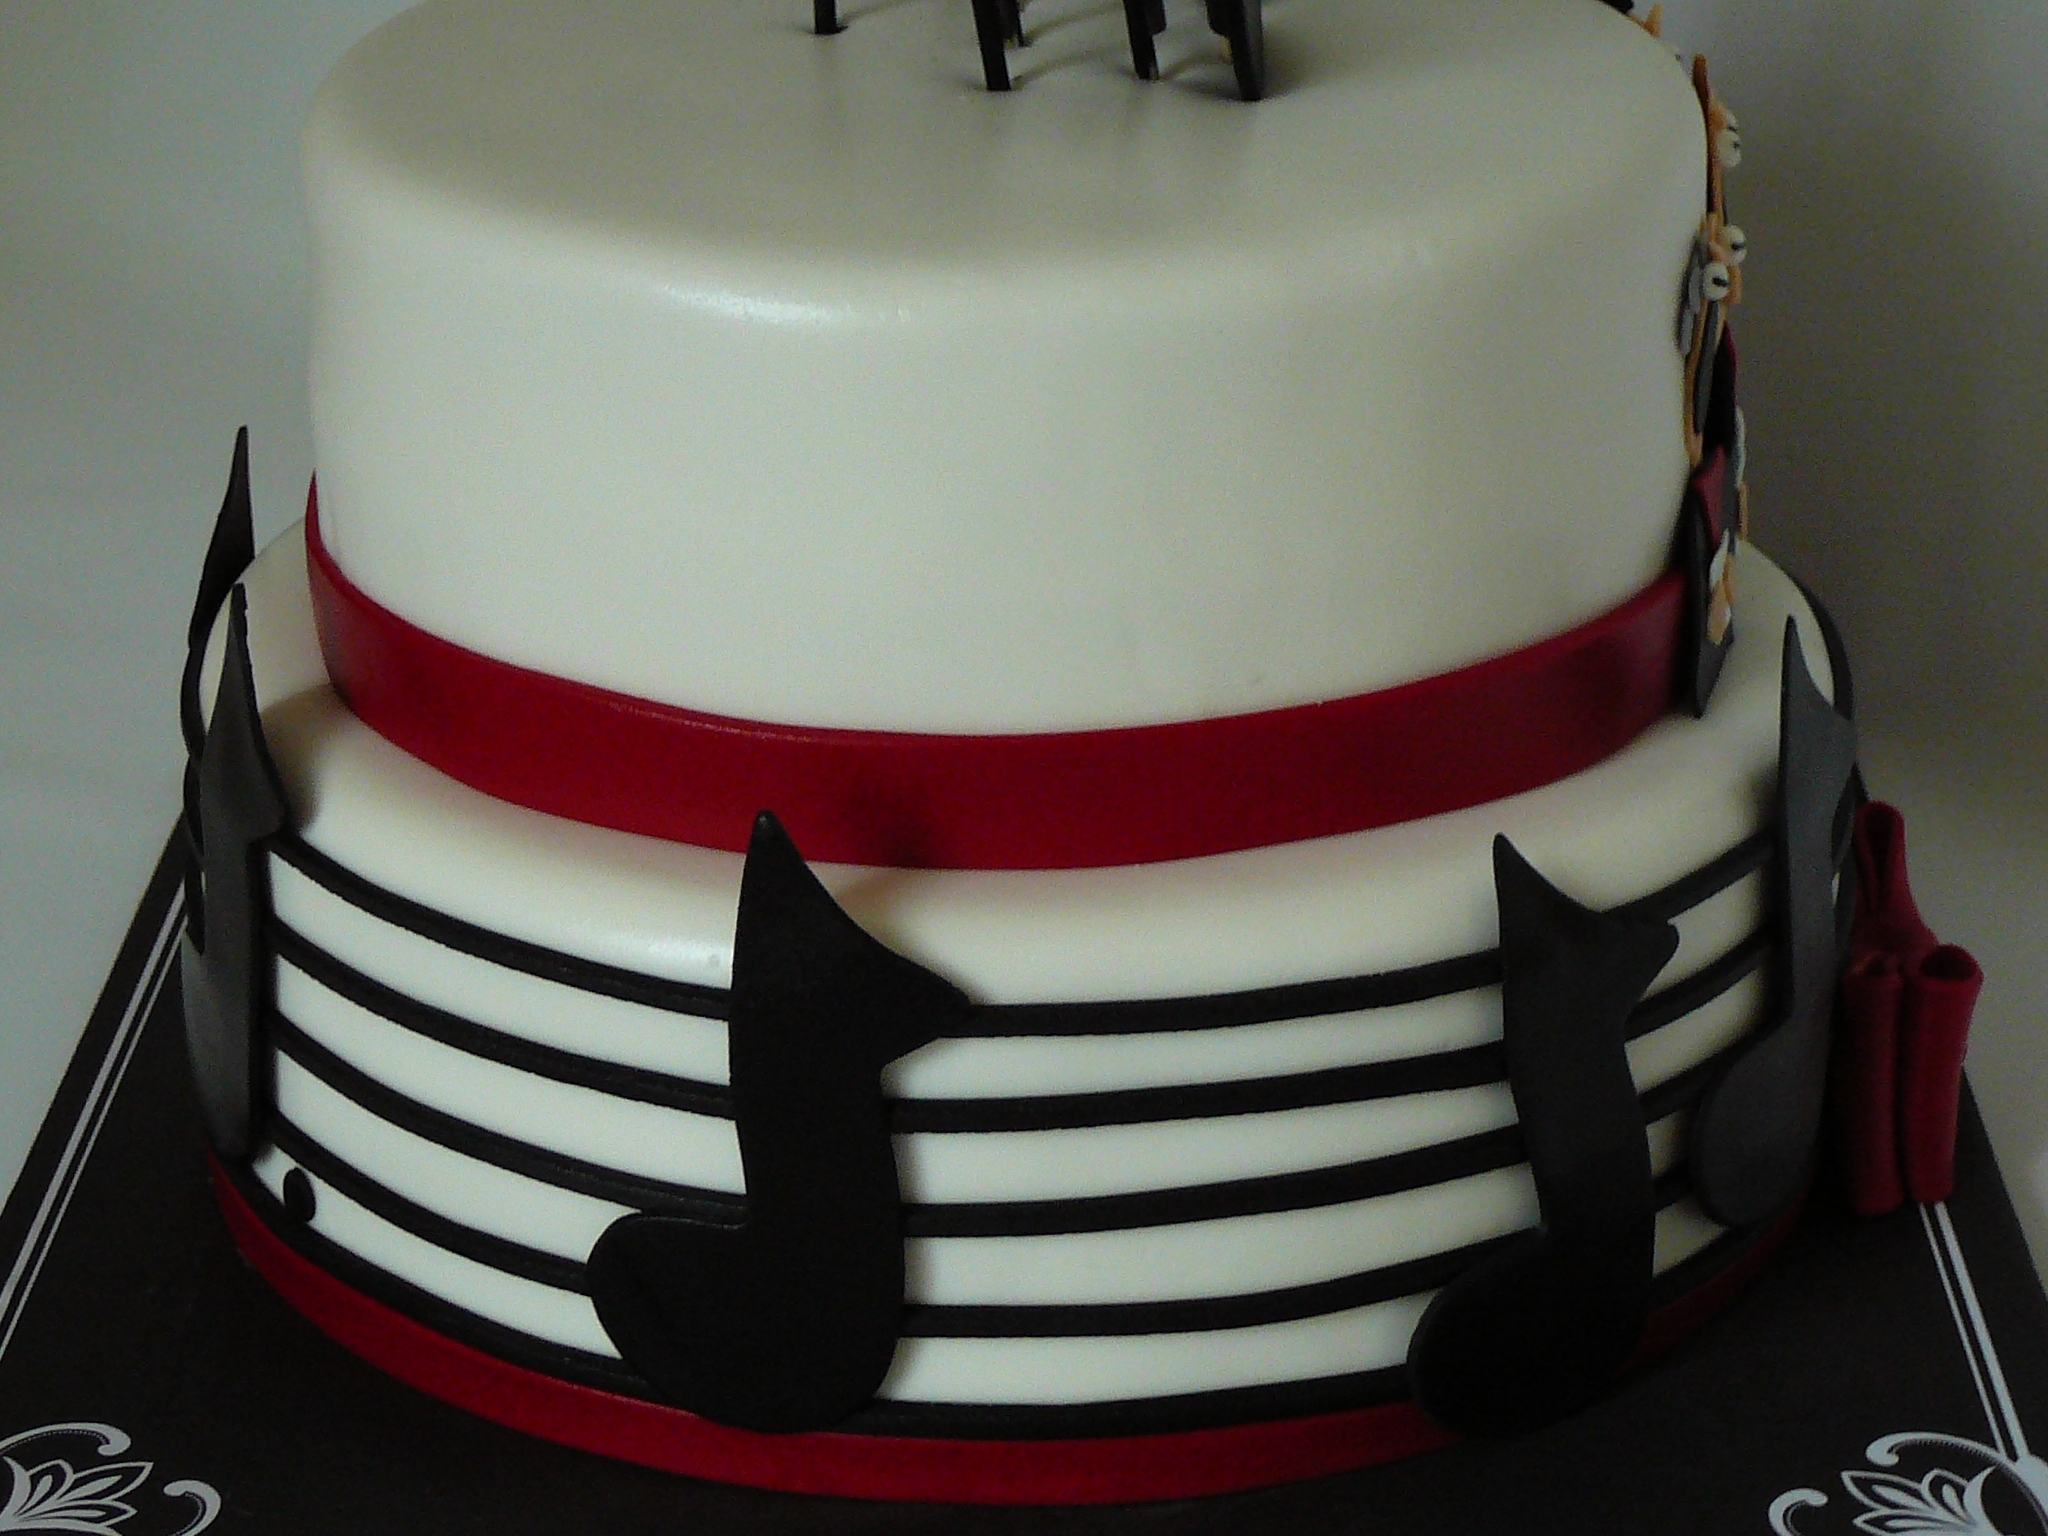 I Made This Cake For A 80 Years Old Man Who Loves Music And Sings In Chorus Vanilla With Raspberrycream Filling Covered Fondant